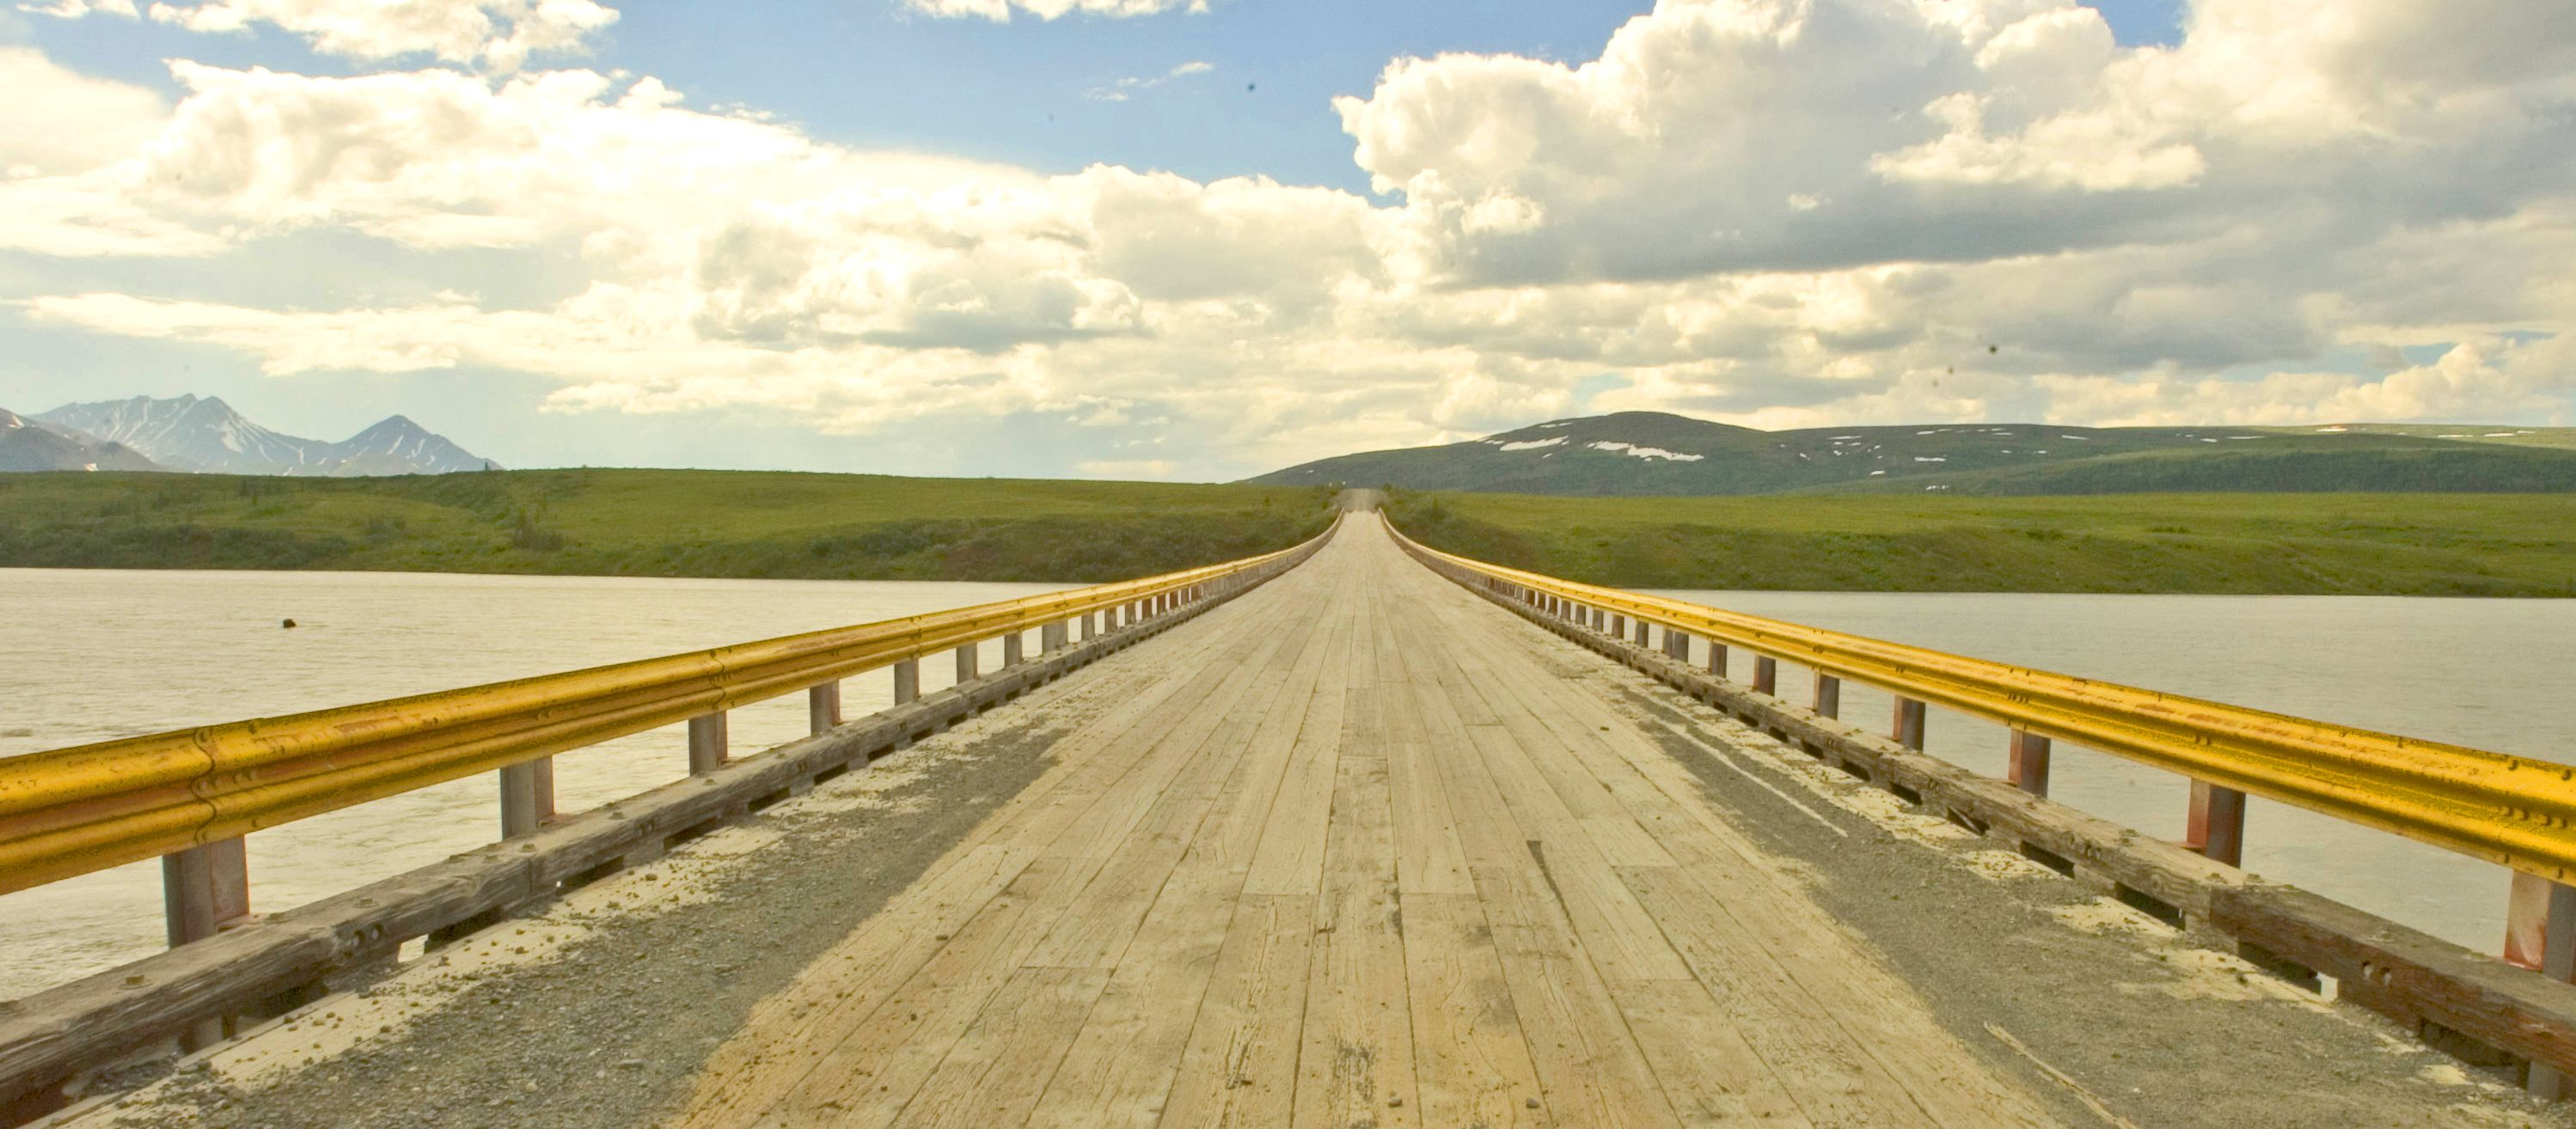 Matt Hage photo- Bridge over the Susitna River on the Denali Highway, Alaska.[#Beginning of Shooting Data Section] Nikon D100 Focal Length: 14mm White Balance: Auto Color Mode: Mode III (sRGB) 2005/01/29 11:29:00.7 Exposure Mode: Aperture Priority AF Mode: AF-S Hue Adjustment: 0¡ RAW (12-bit) Metering Mode: Multi-Pattern Tone Comp: Normal Sharpening: Normal Image Size: Large (3008 x 2000) 1/160 sec - f/5.6 Flash Sync Mode: Not Attached Noise Reduction: OFF Exposure Comp.: +1.7 EV Lens: 14mm f/2.8 D Sensitivity: ISO 400 Image Comment: [#End of Shooting Data Section]